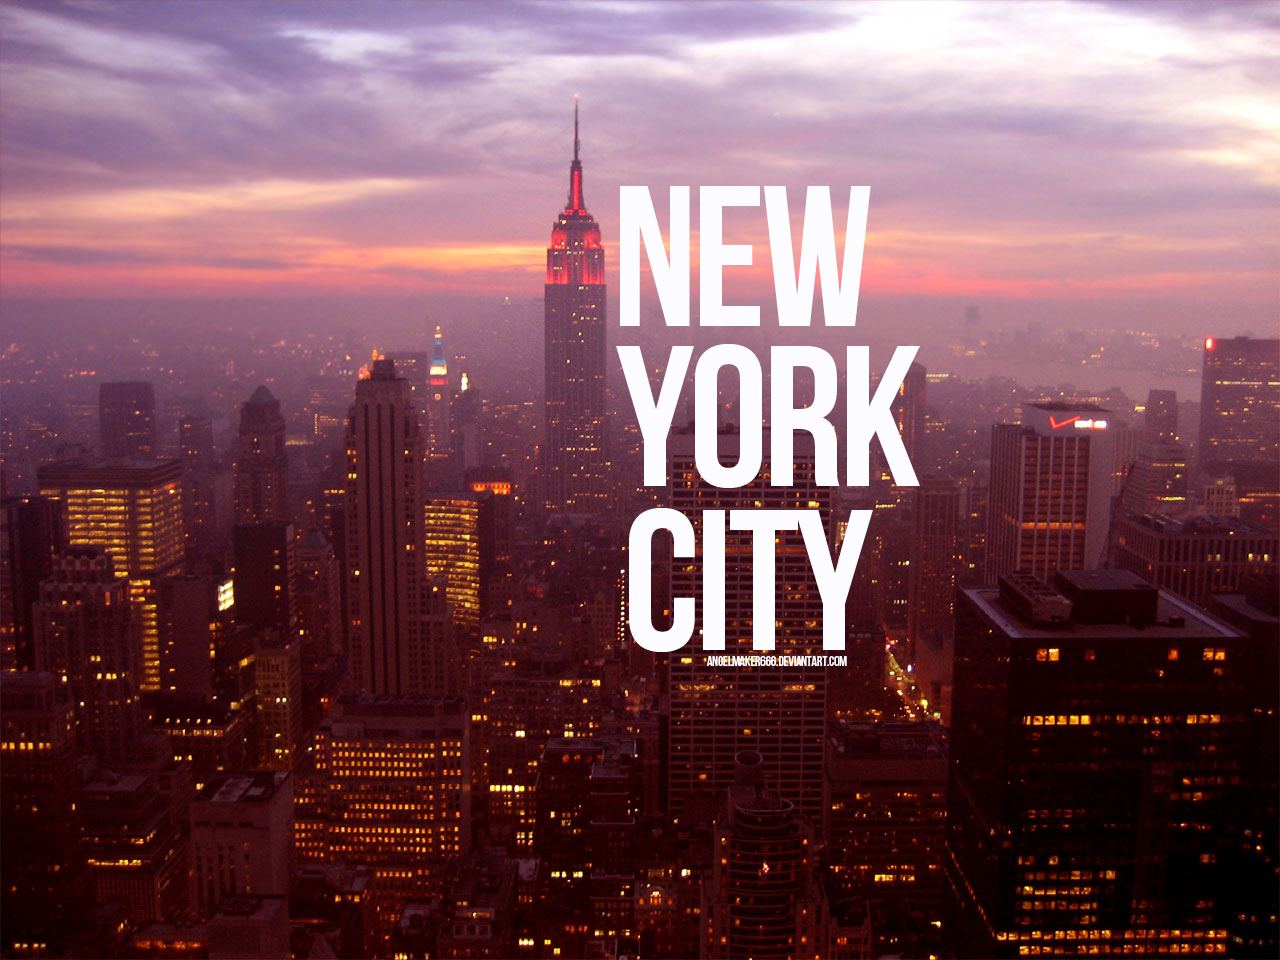 New York City Wallpaper by Angelmaker666